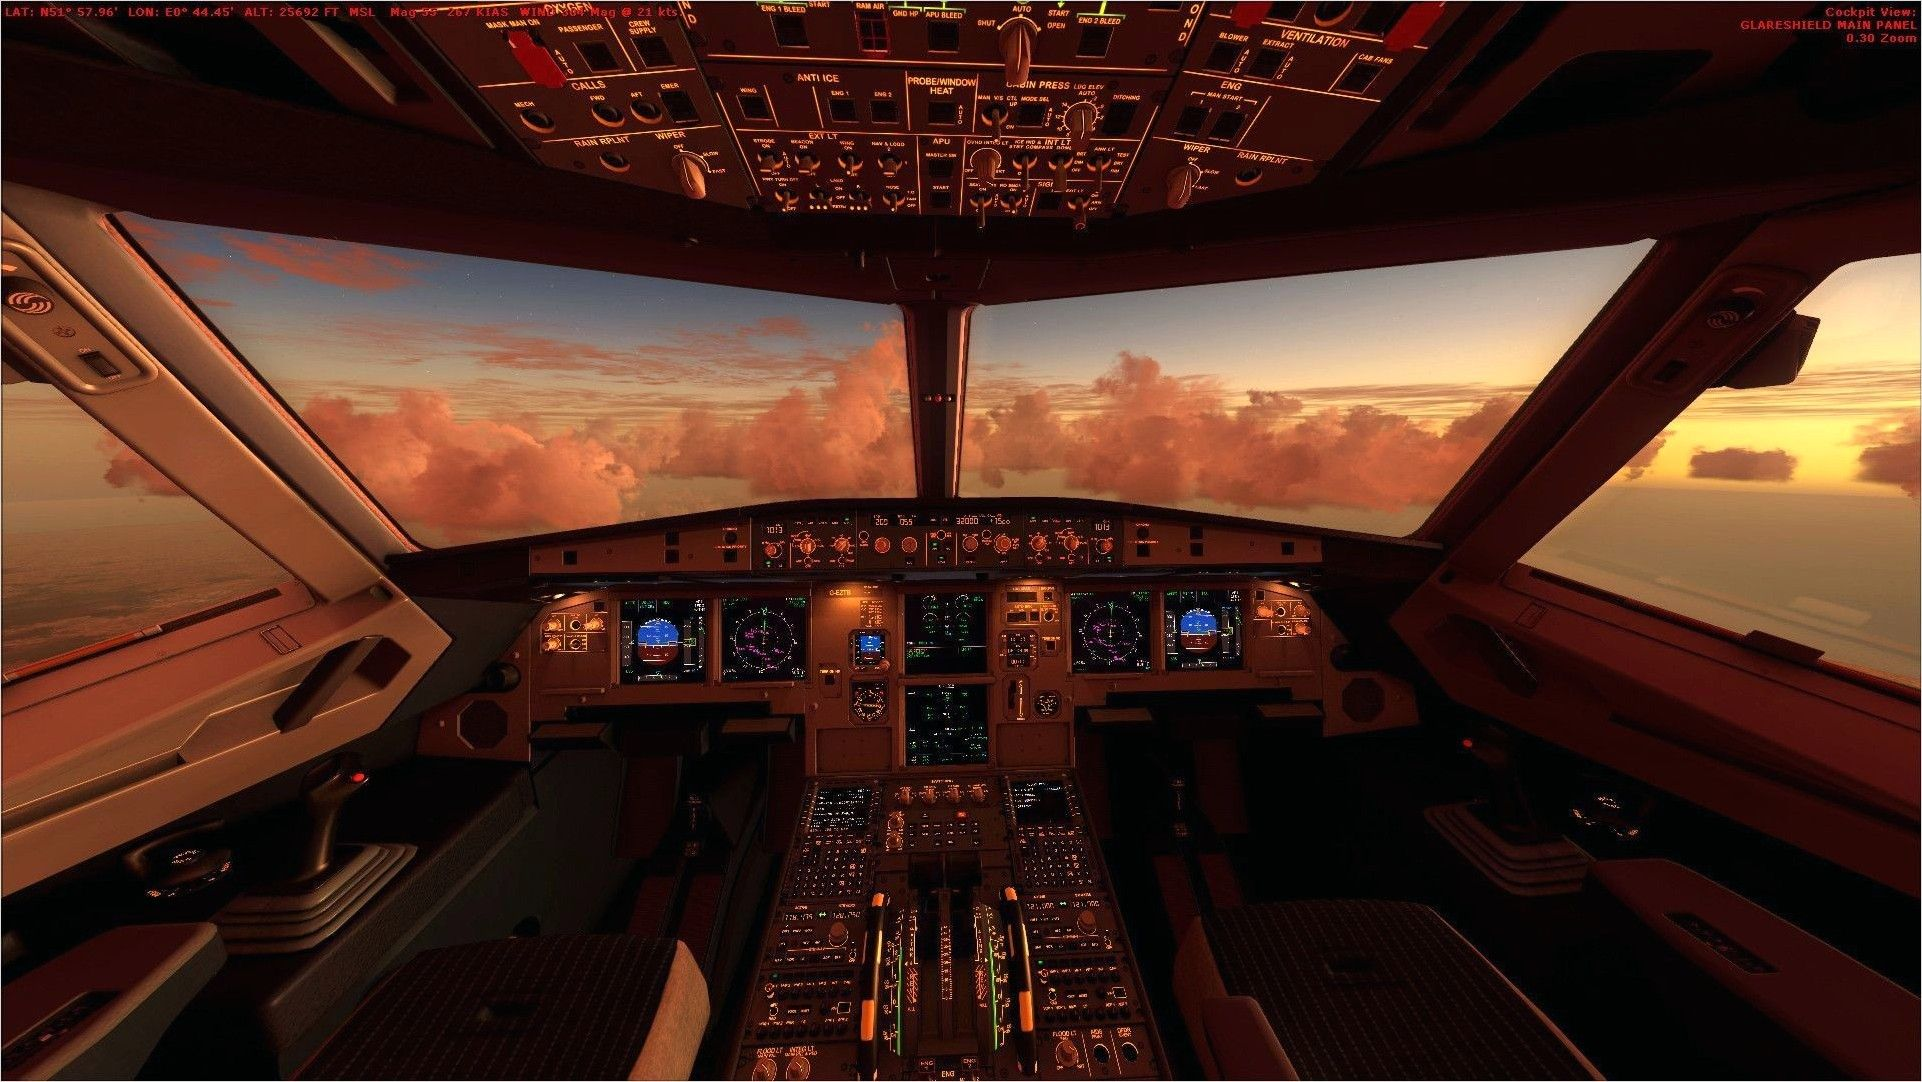 Pin By Christian Arias On New Found Career In 2020 Cockpit